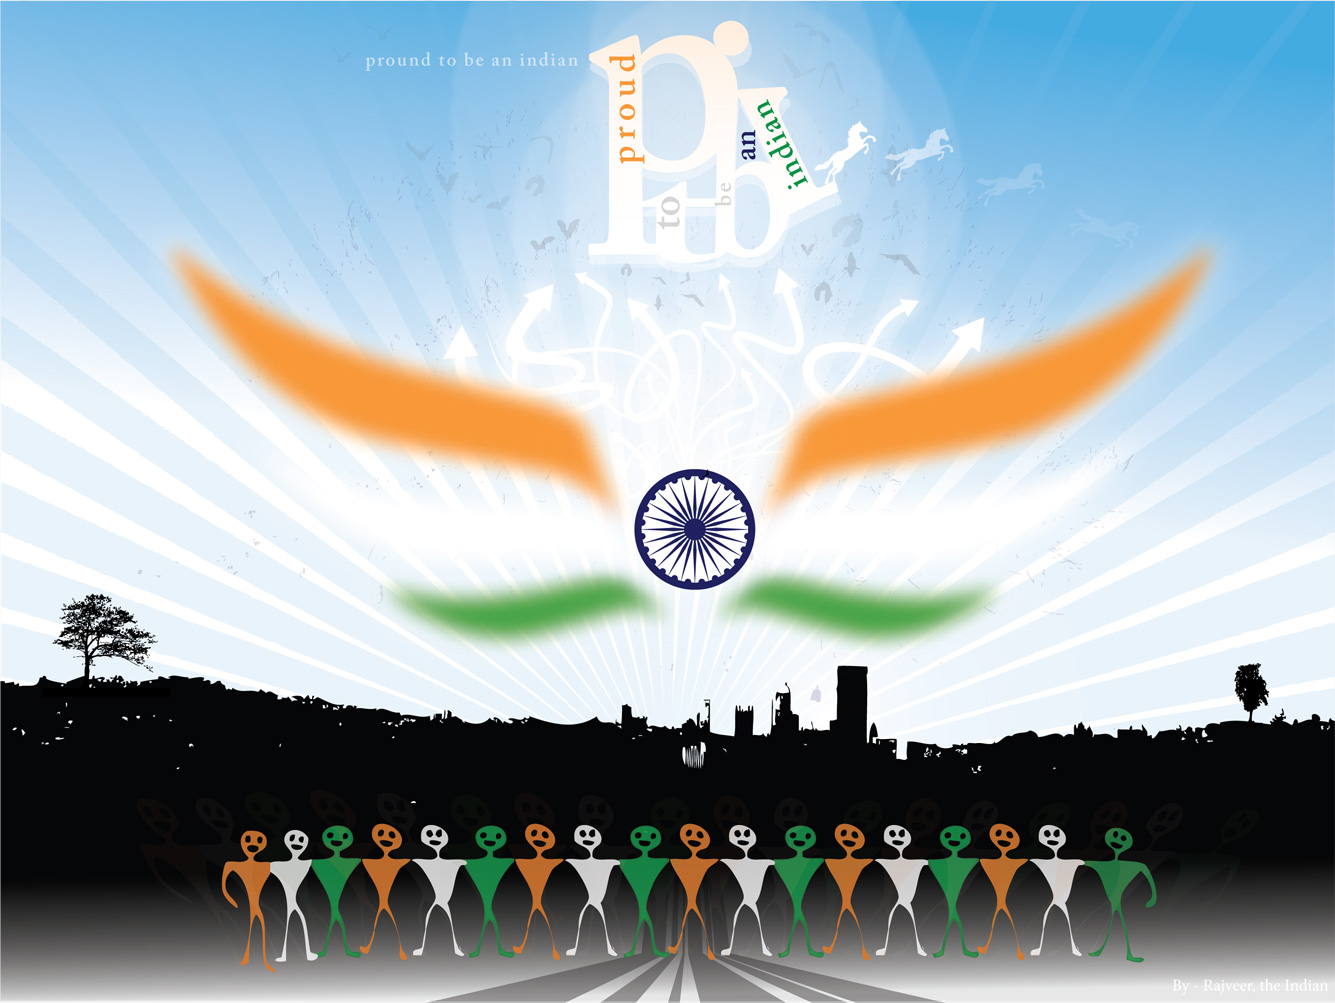 Free Wallpapers: Indian Independence Day wallpapers | Celebrations of Indian Independence Day